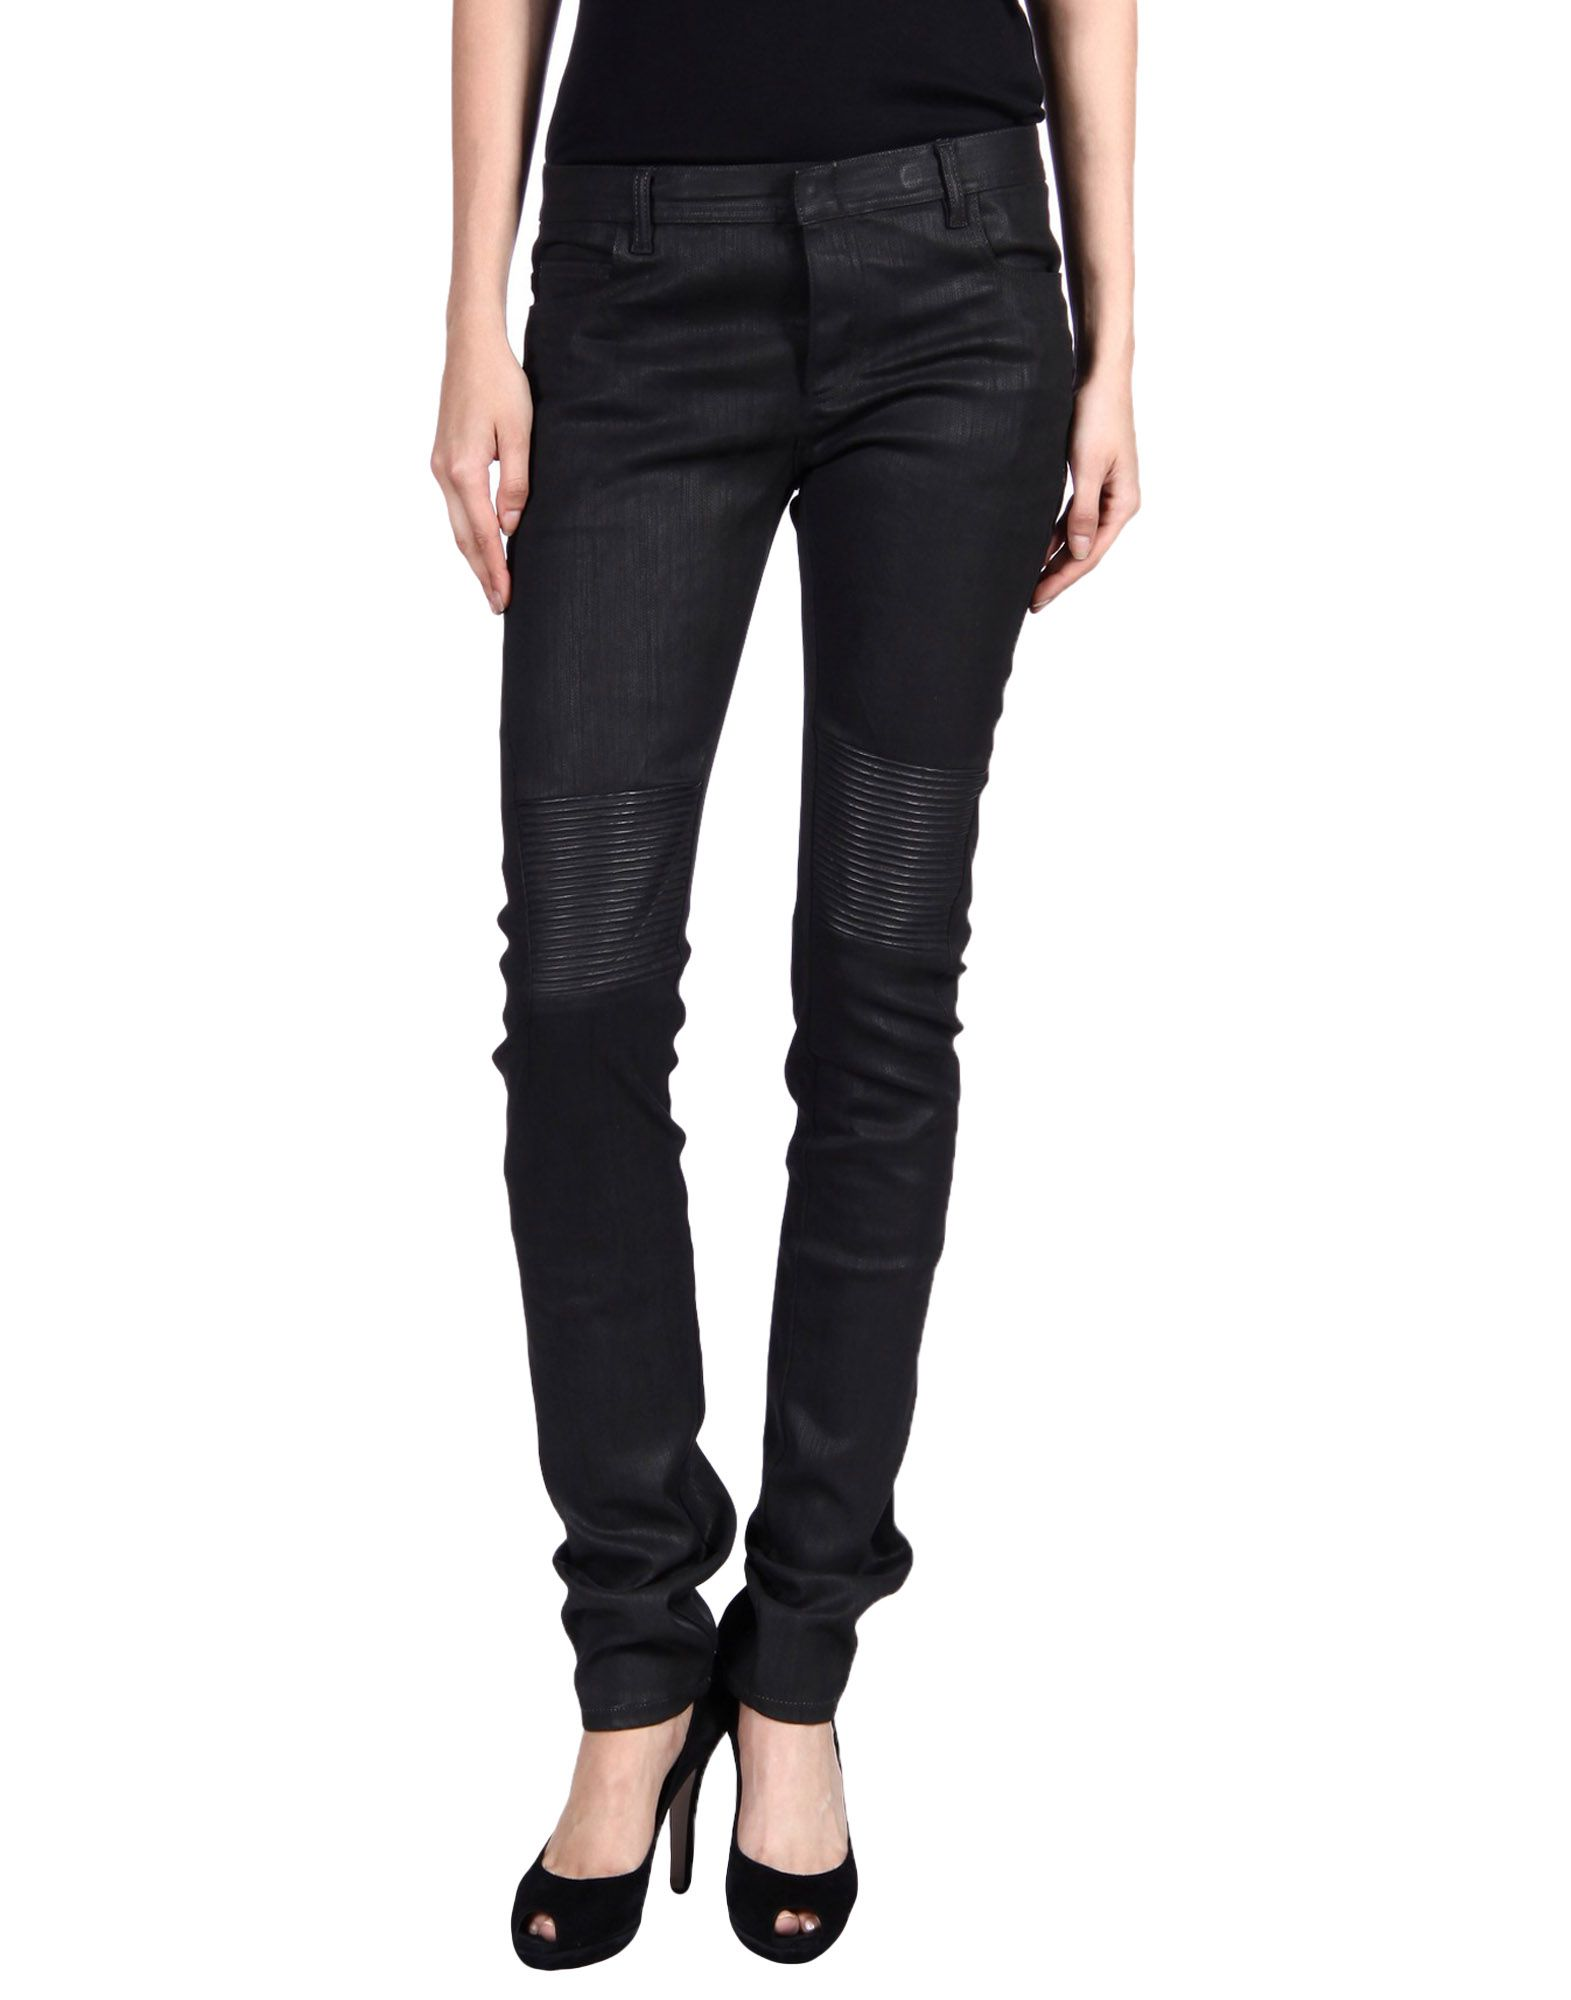 NICOLAS ANDREAS TARALIS Denim Pants in Black